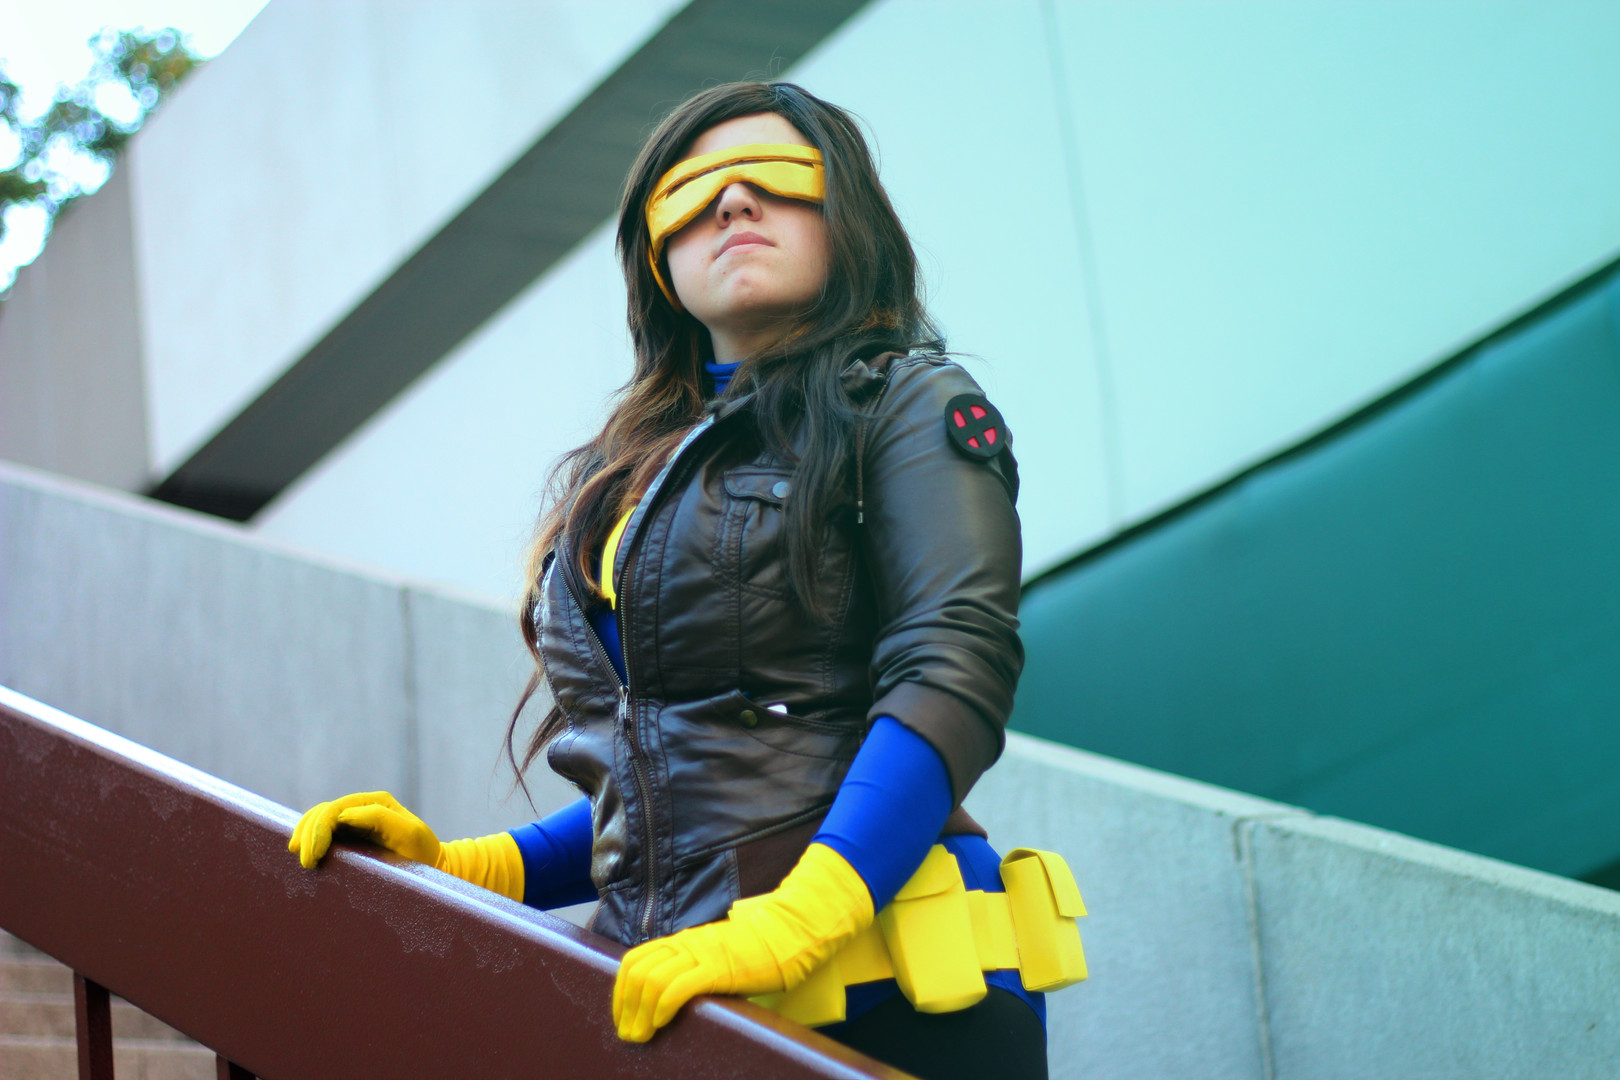 Cyclops Photo by Jd Serada